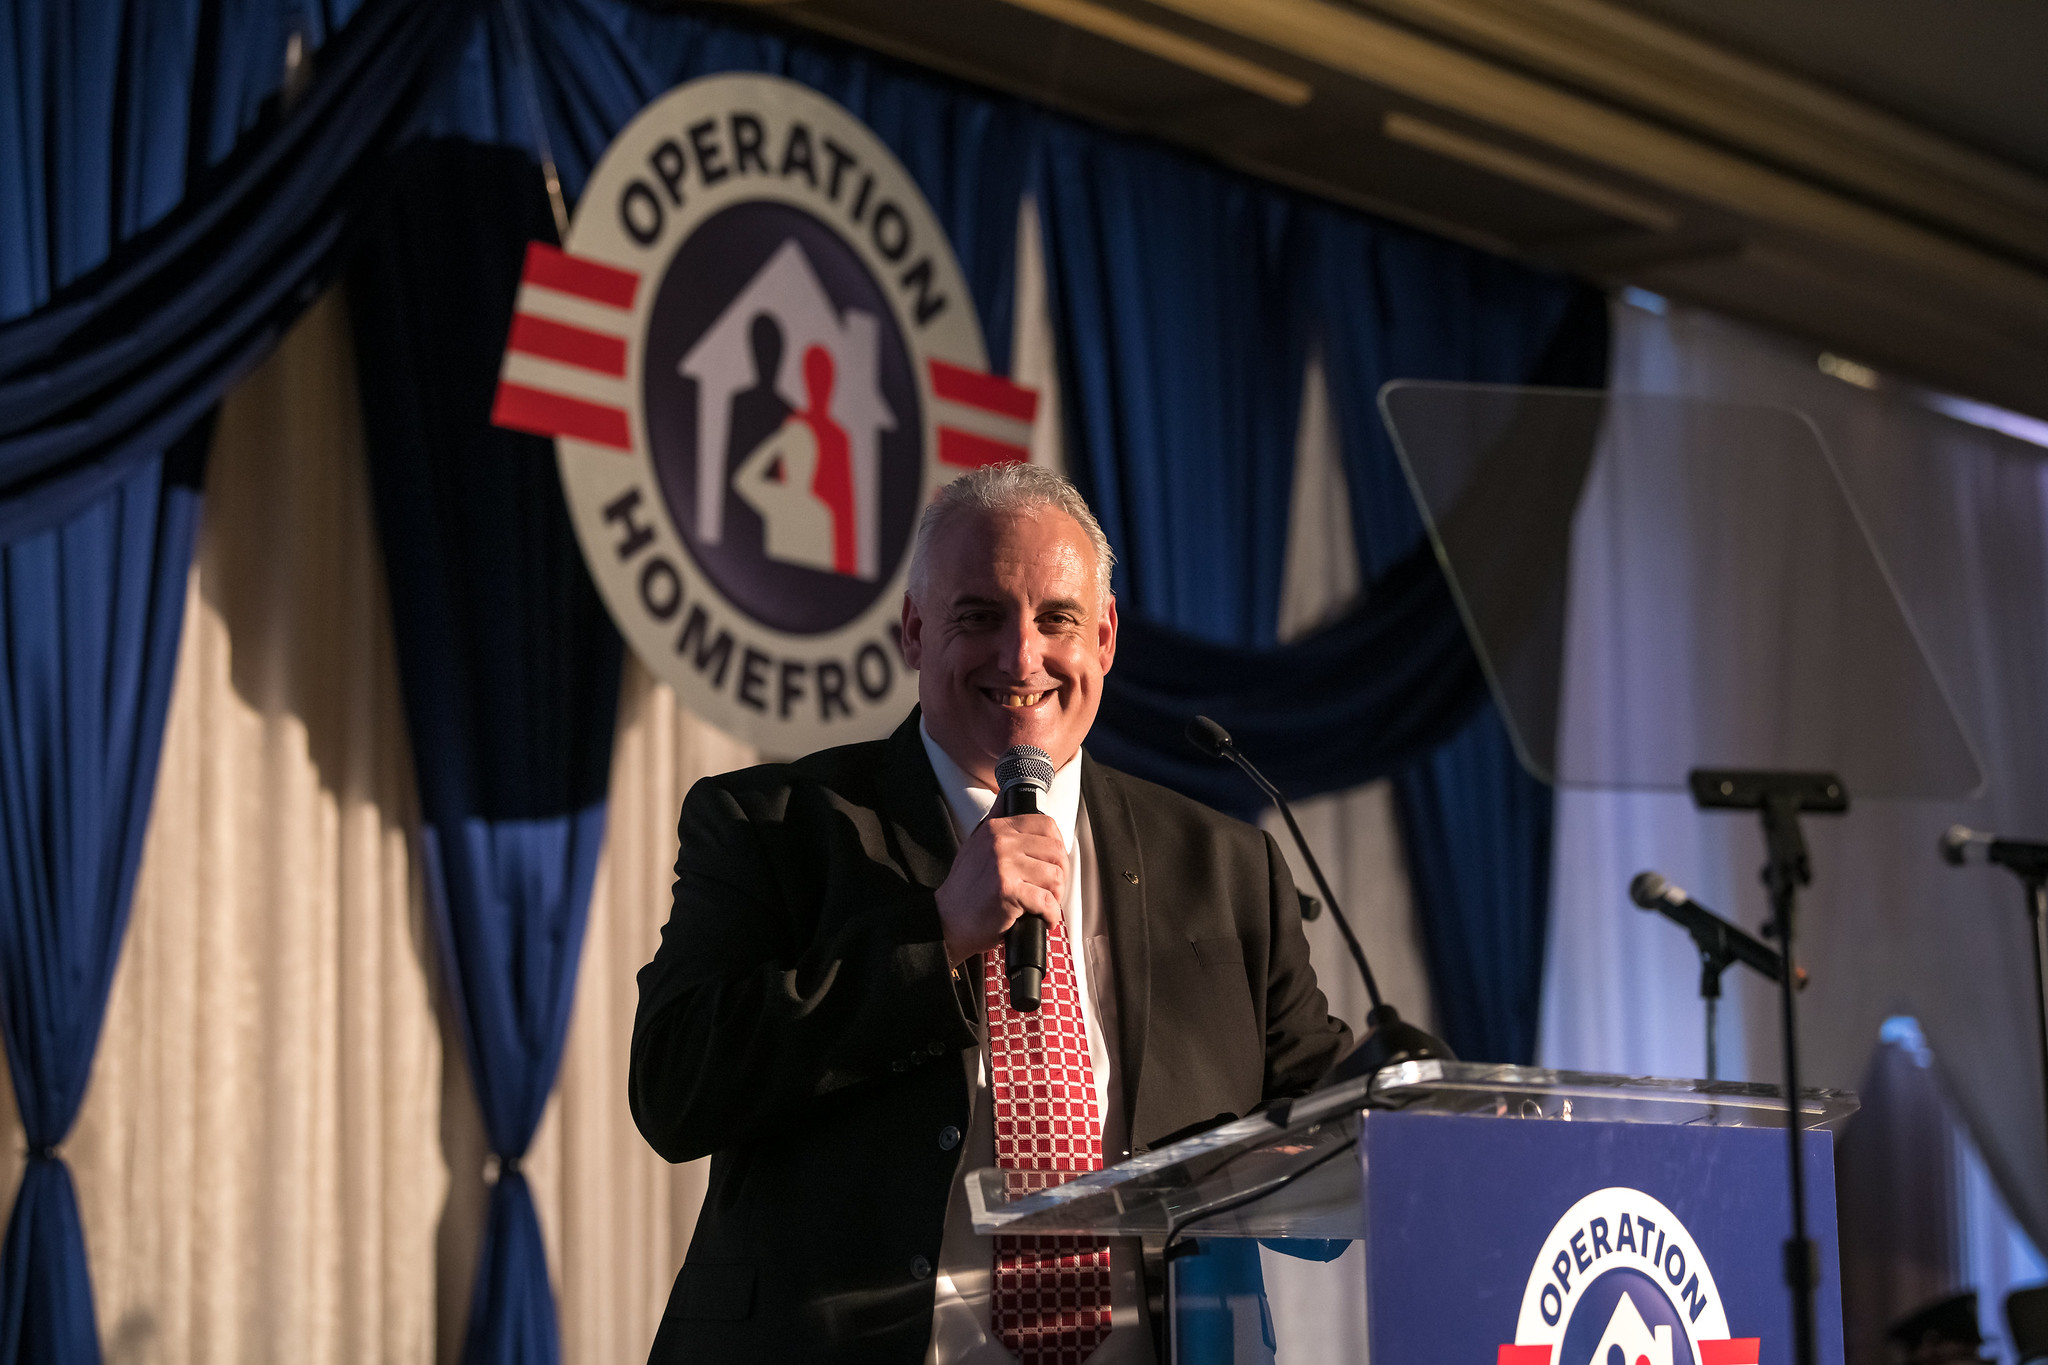 Carnival Brand Ambassador John Heald Emcees Operation Homefront's Annual 'Military Child of the Year' Awards